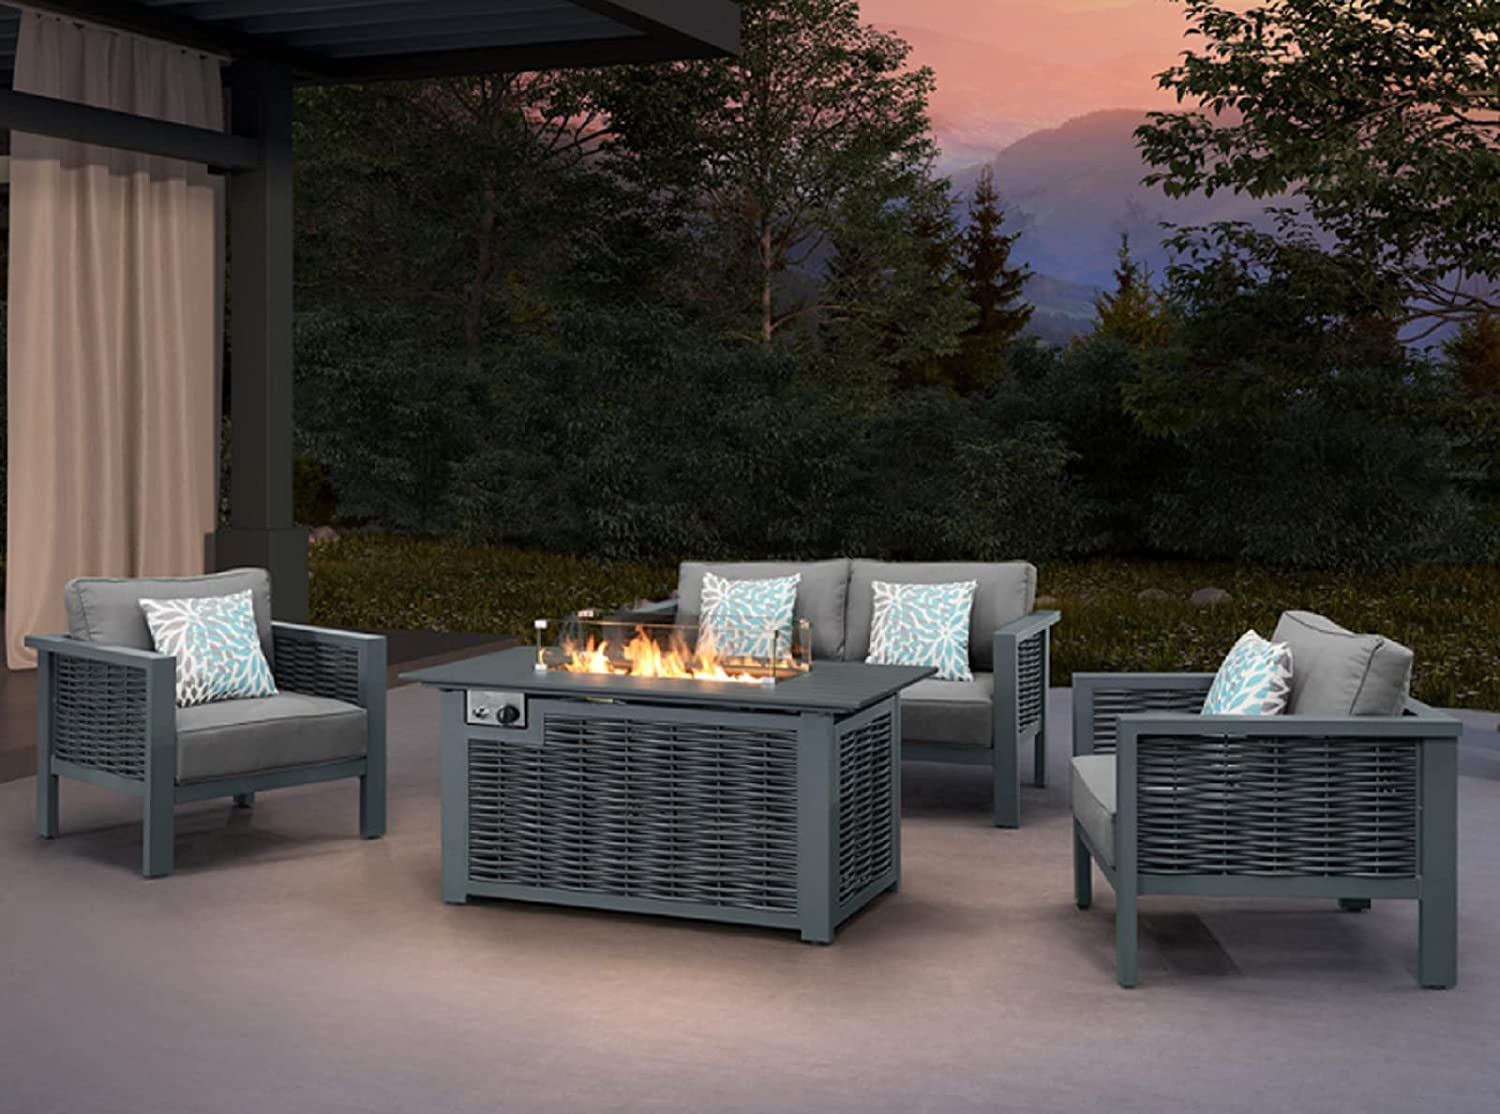 KUMMA 4-Piece High Max 79% OFF quality new Rattan Patio Conversation Furniture Set with Luxry